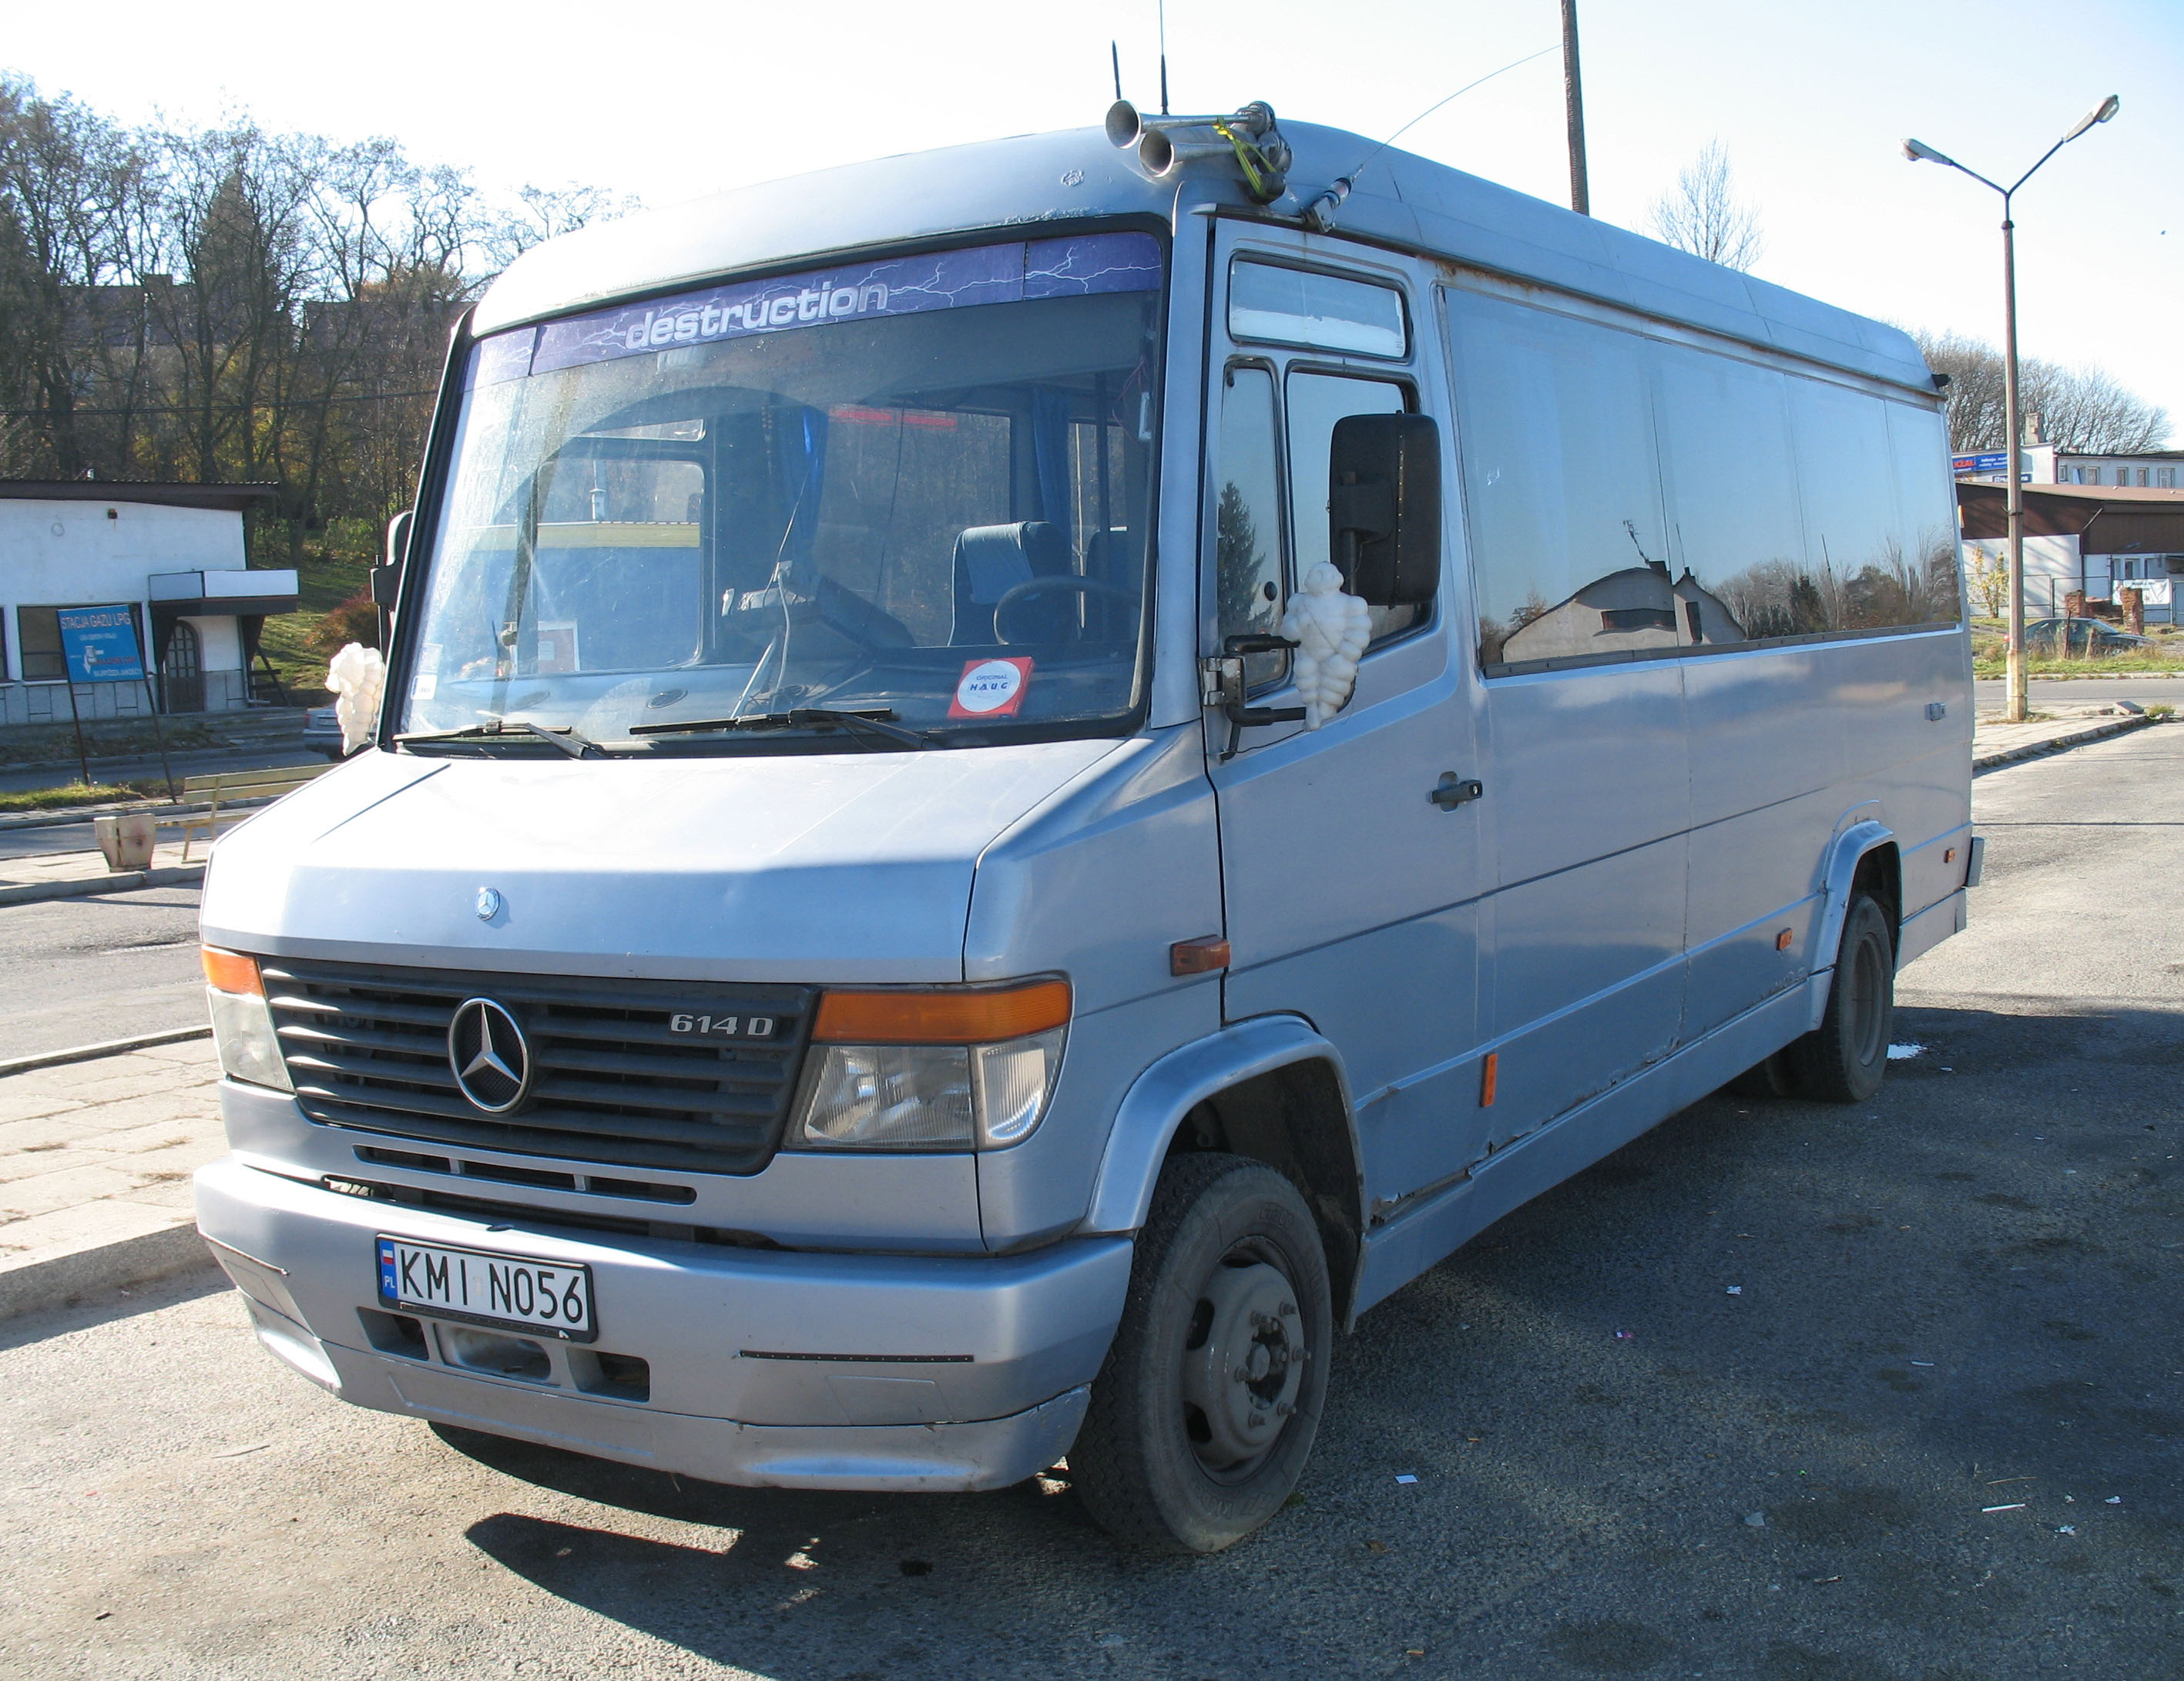 file mercedes benz vario 614d in miech wikimedia